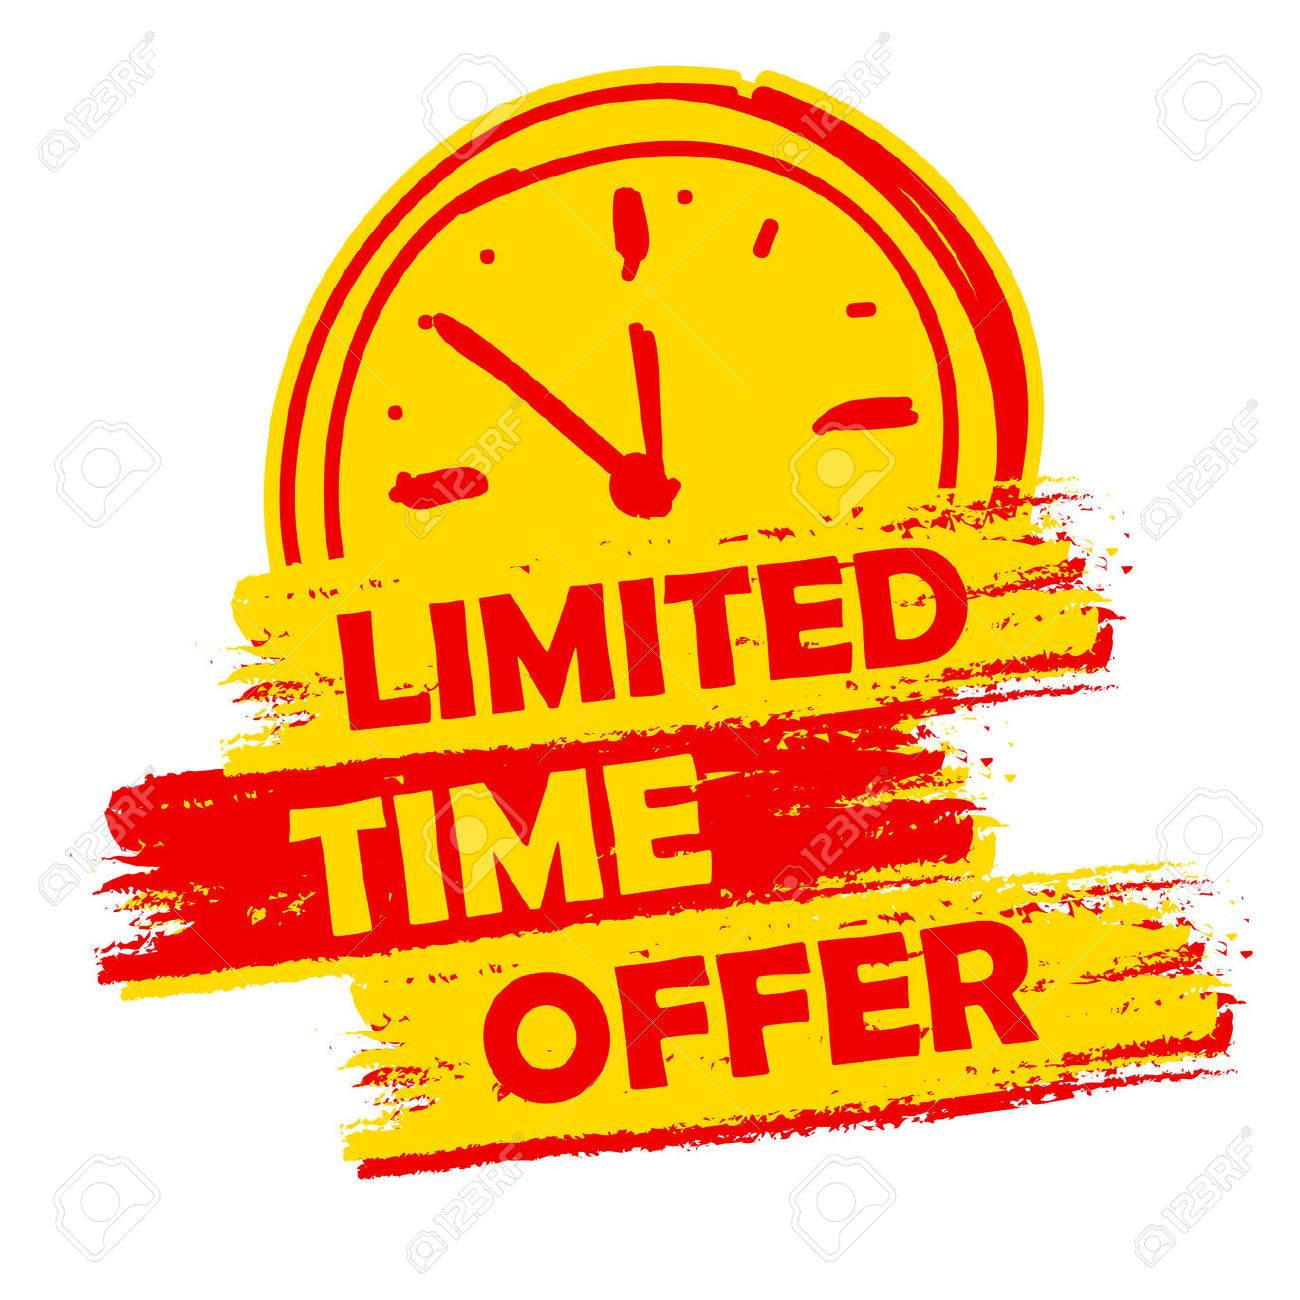 Limited time offer with clock sign banner text in yellow and limited time offer with clock sign banner text in yellow and red drawn label with buycottarizona